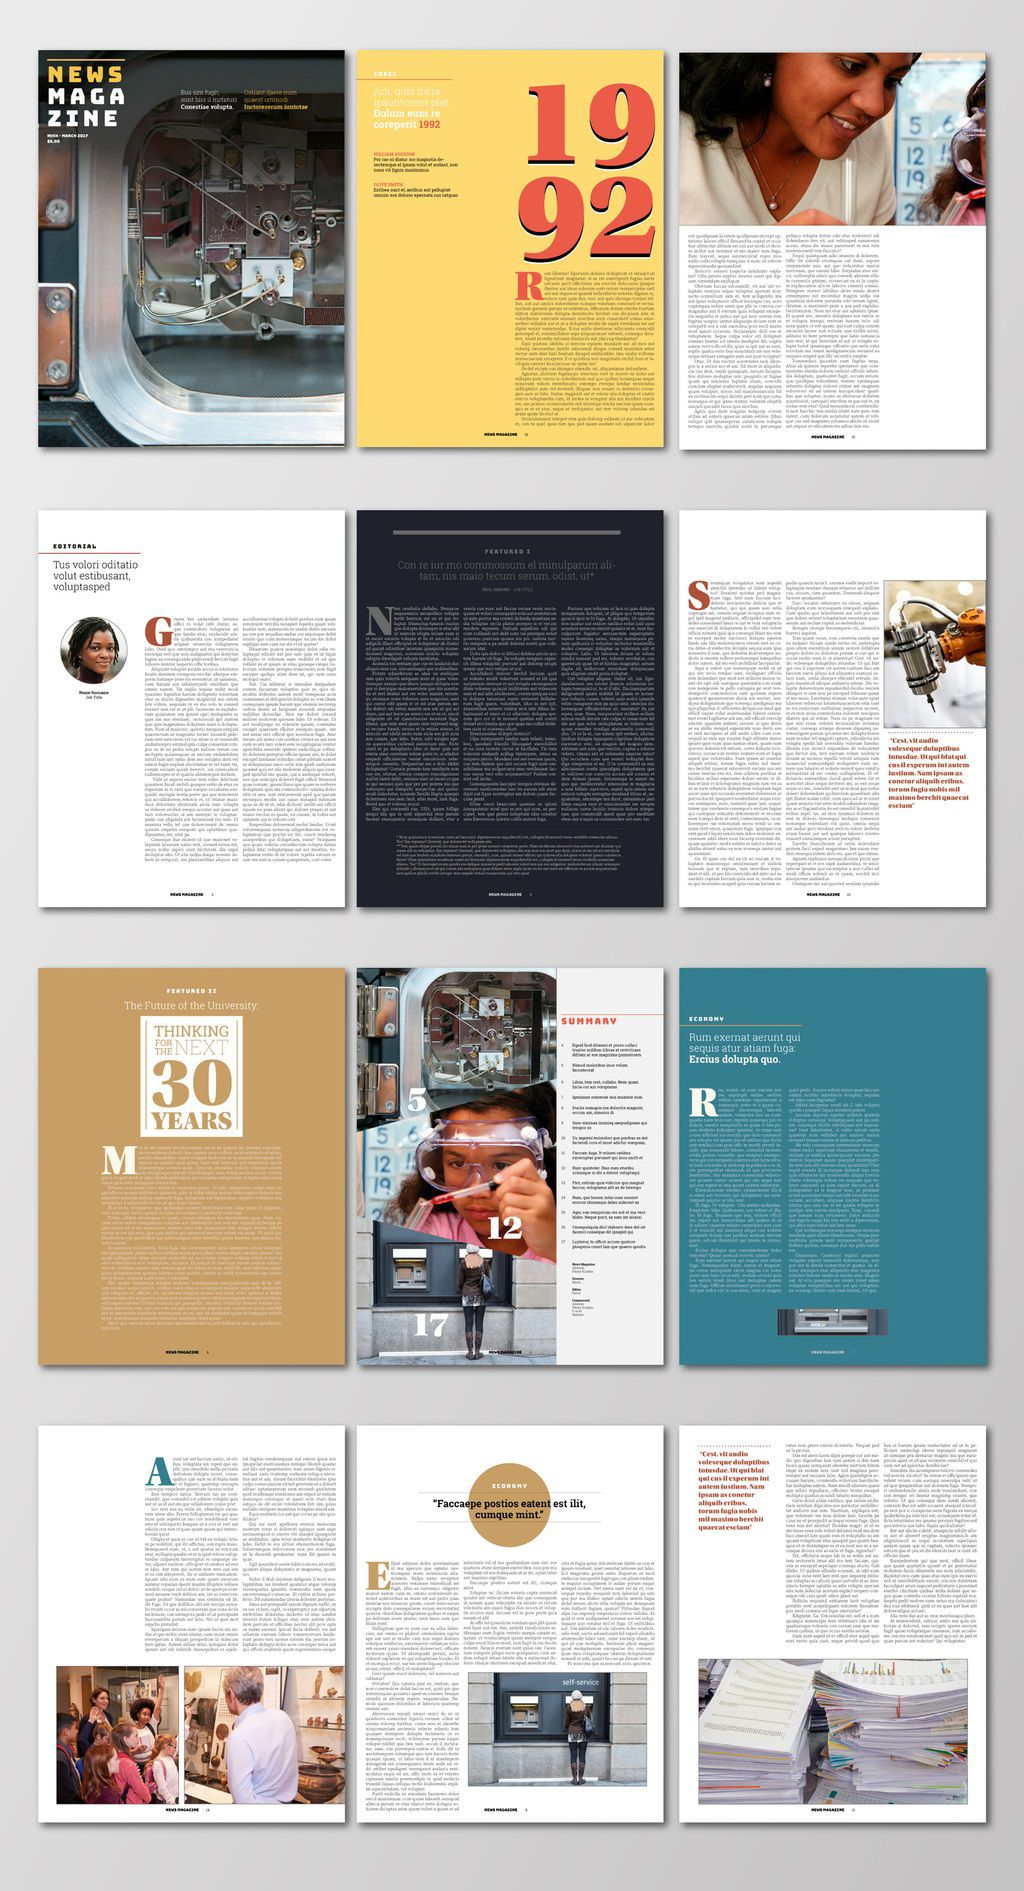 004 Excellent Indesign Magazine Template Free Concept  Cover Download Indd Cs5Full